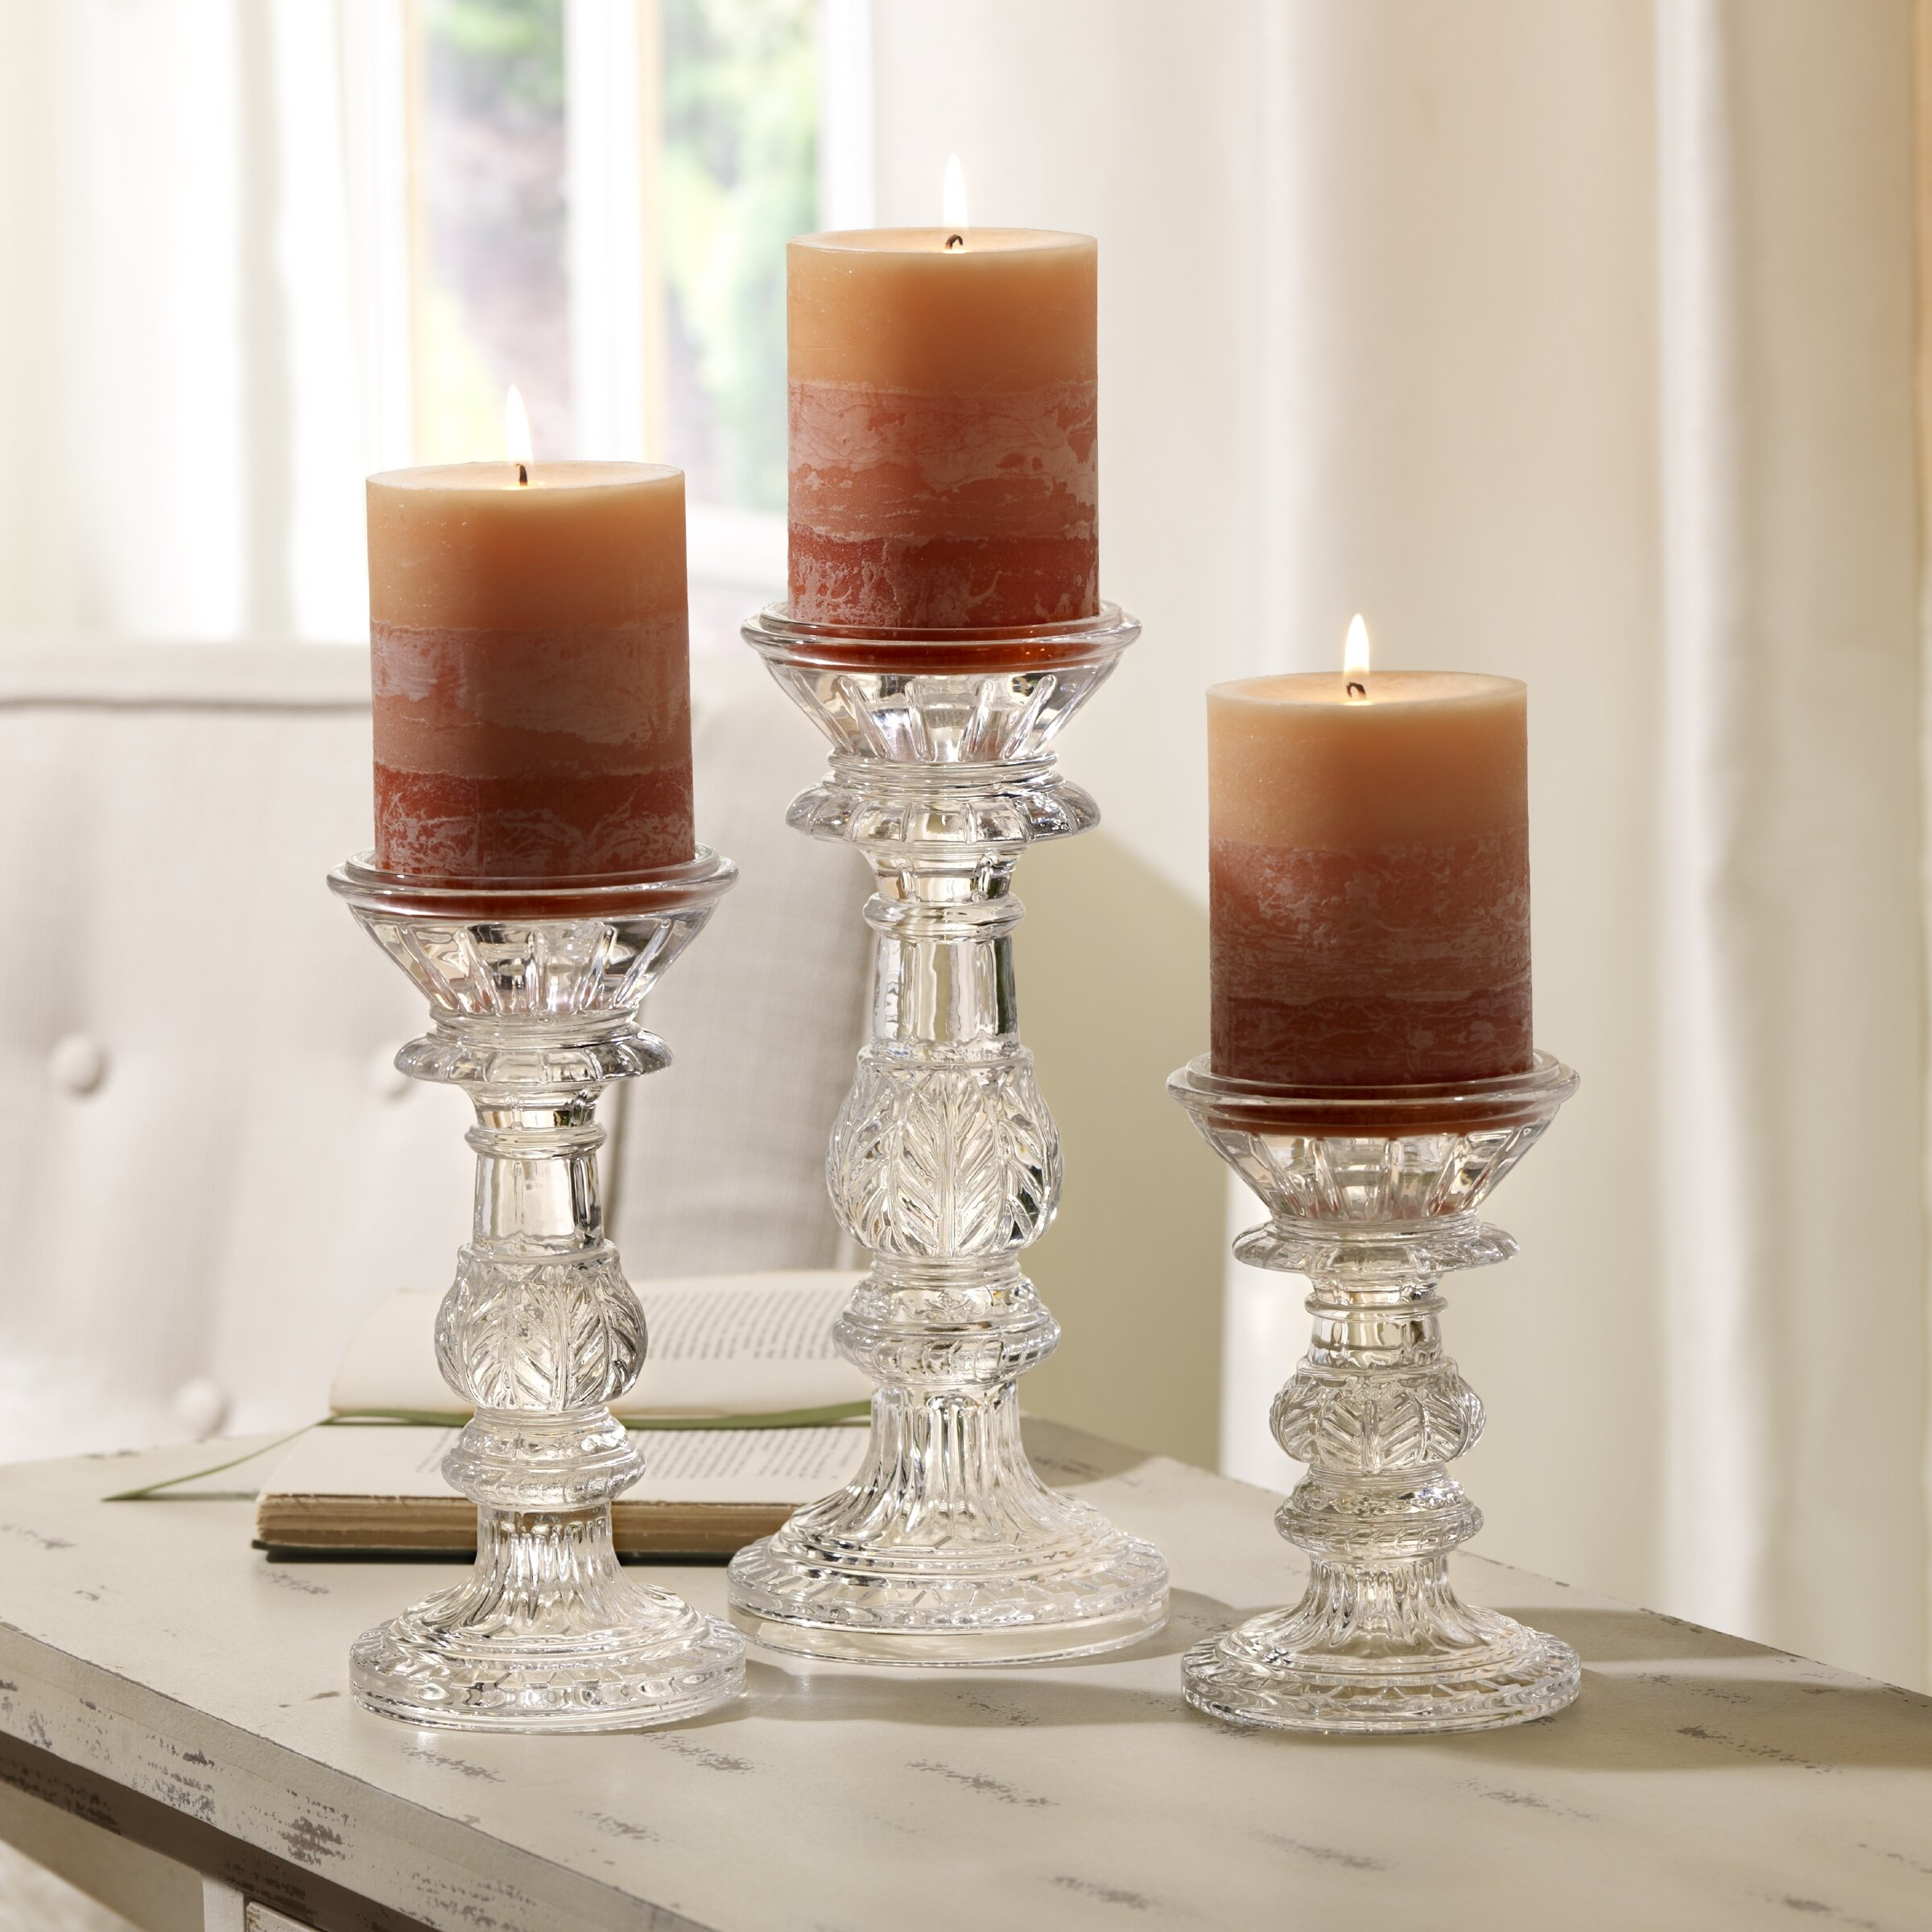 Bombay 3 Piece Glass Leaf Candle Holder Set amp Reviews  : Bombay 3 Piece Glass Leaf Candle Holder Set from www.wayfair.com size 2400 x 2400 jpeg 520kB